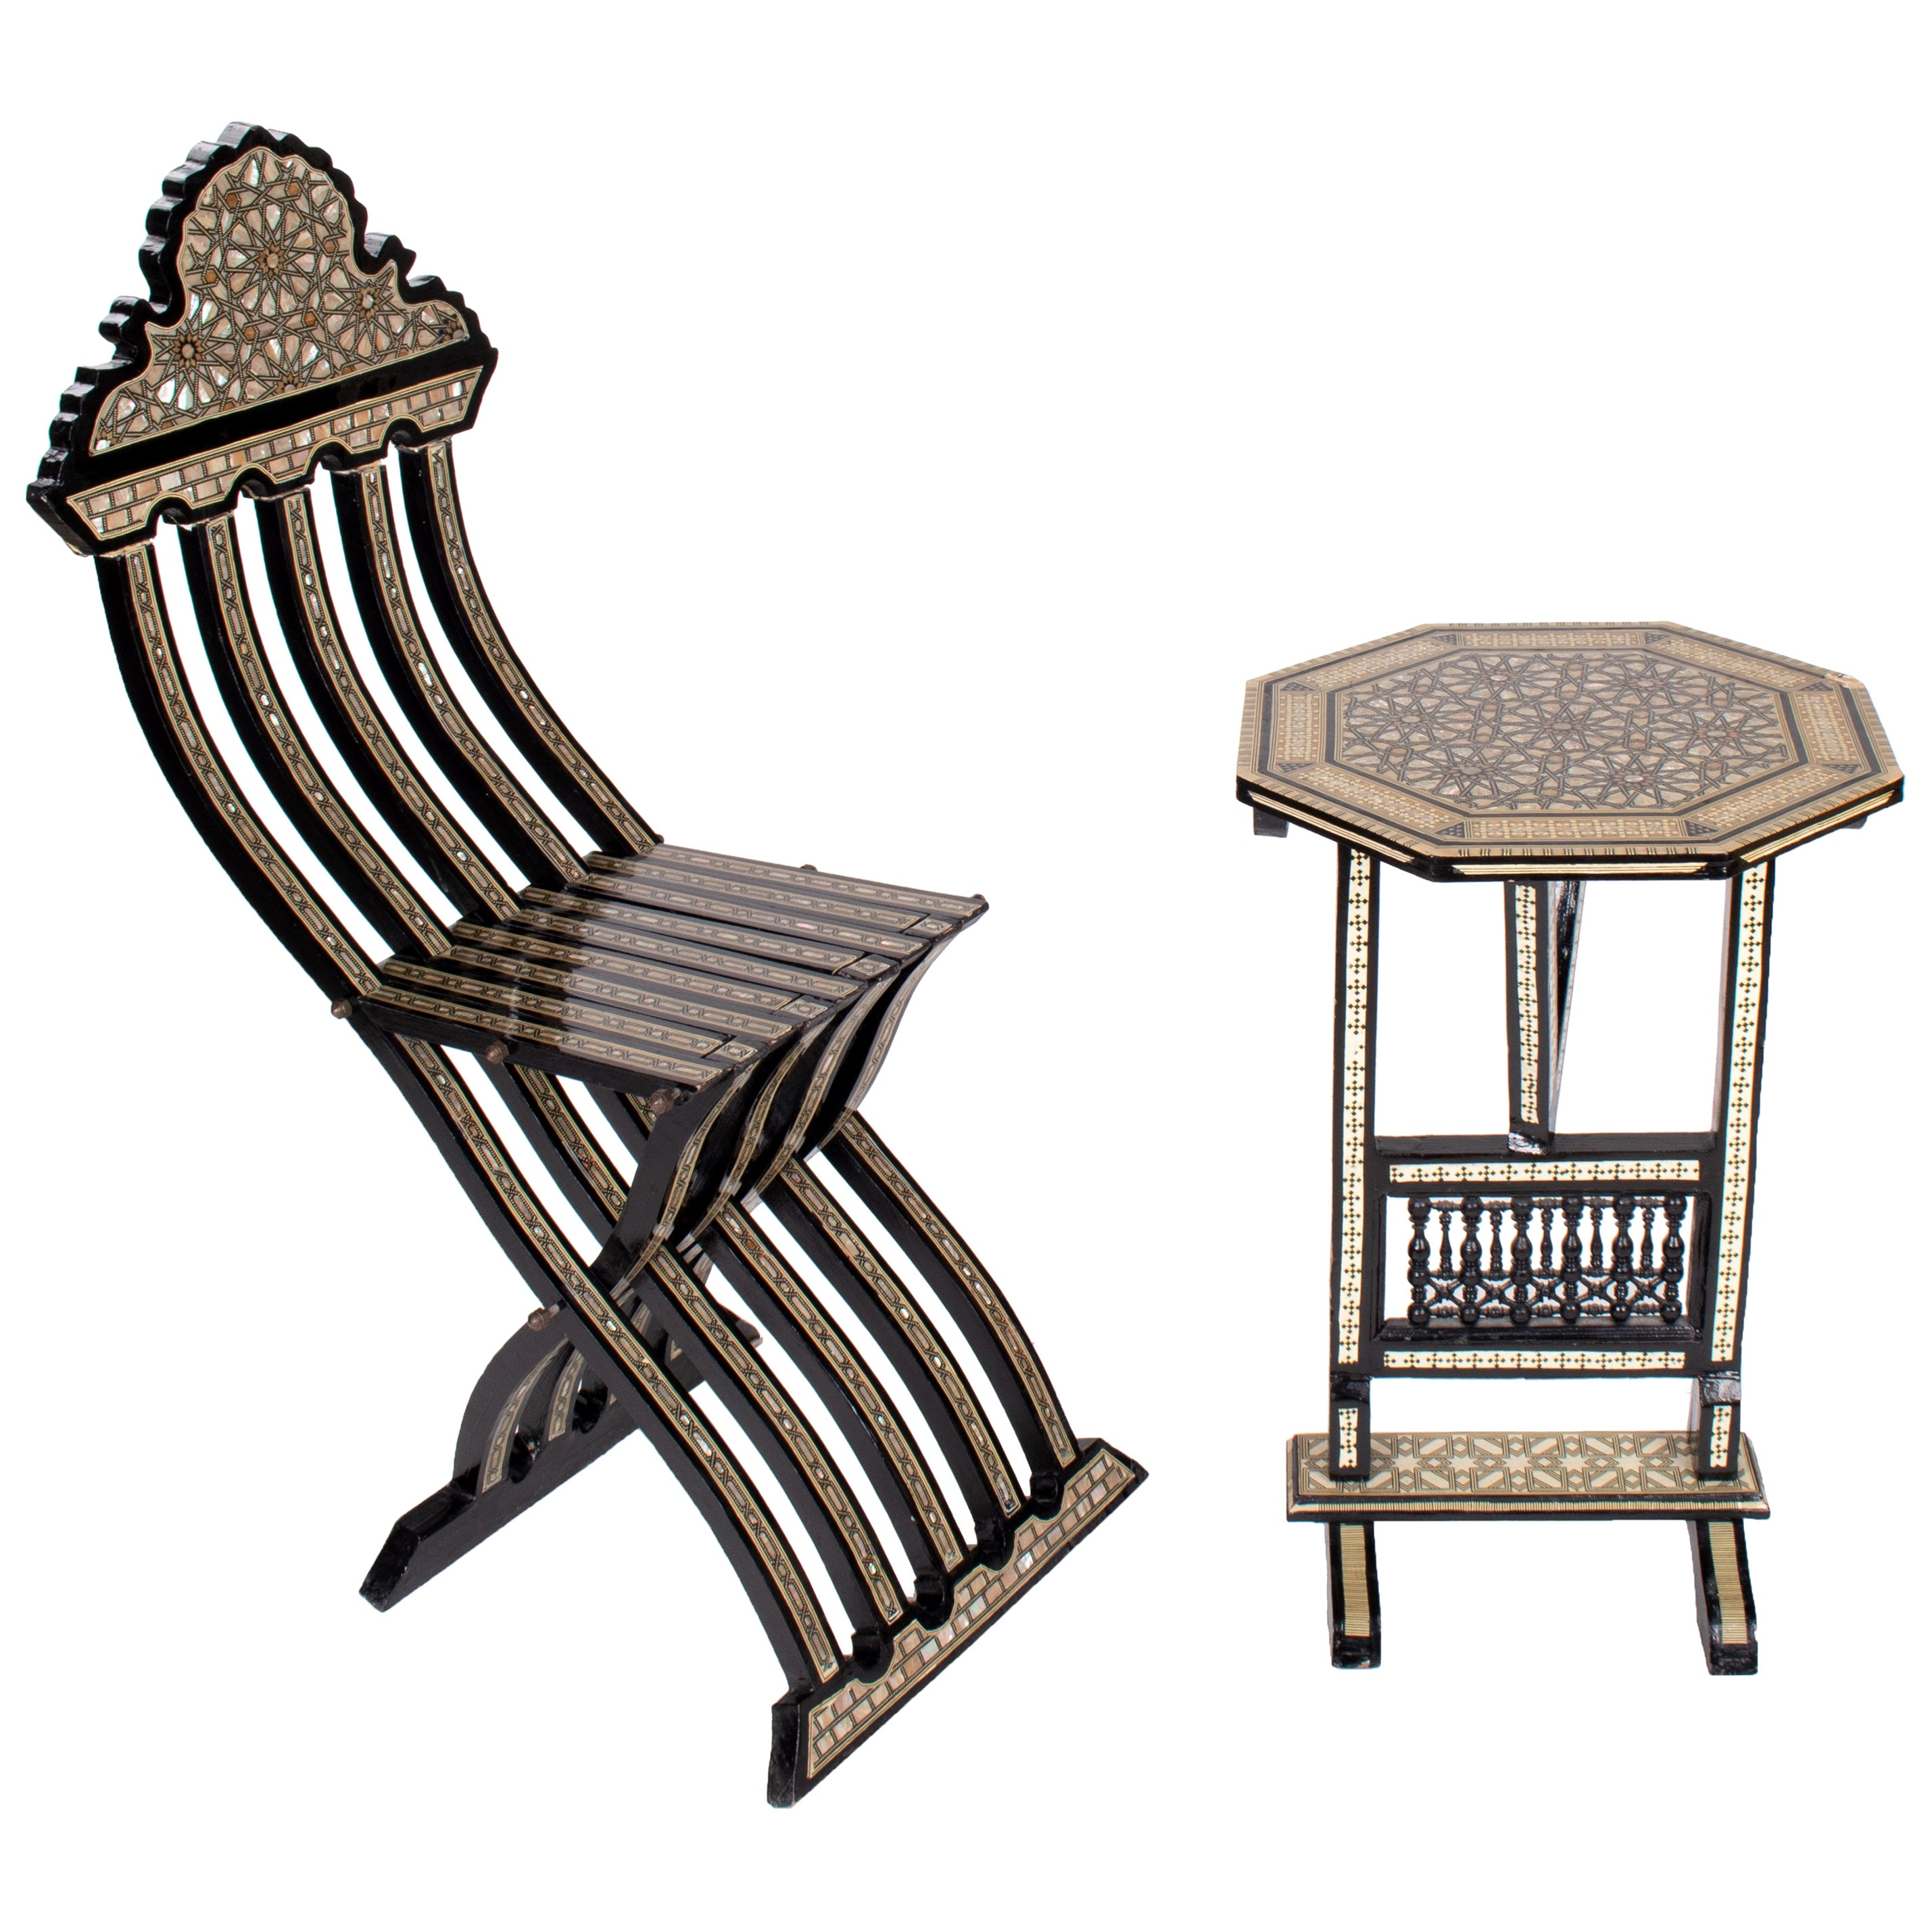 1990s Moroccan Style Inlayed Folding Table and Chair